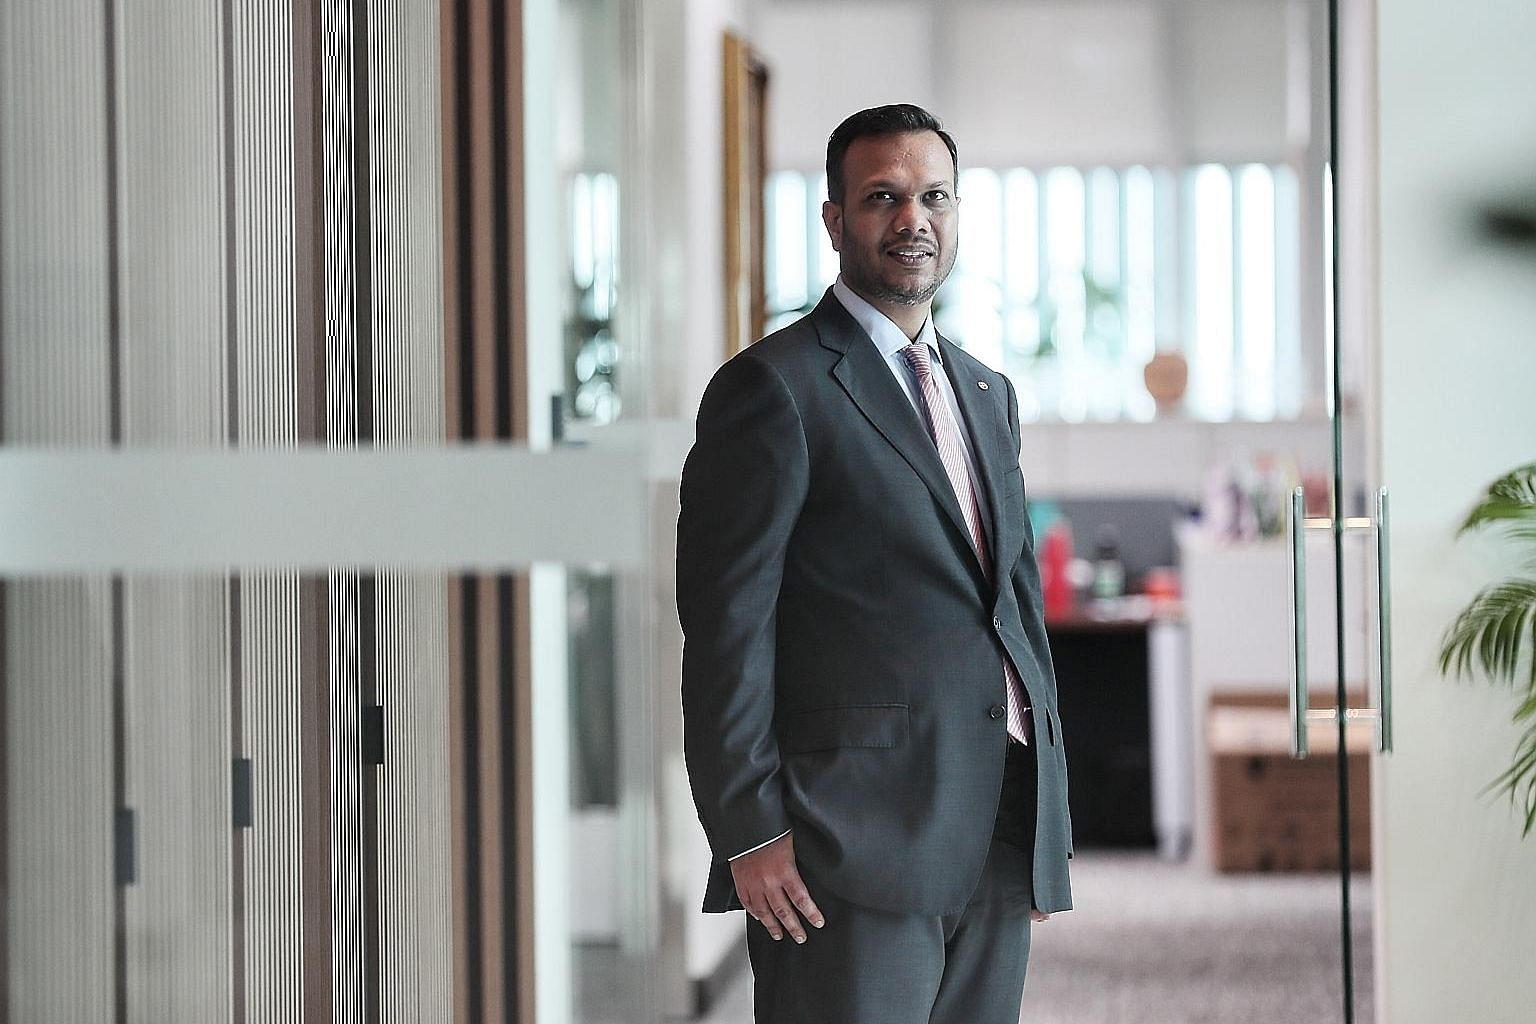 Mr Manish Tibrewal is the chief executive of Maitri Asset Management. Maitri was founded as the Tolaram Group's family office in 2015 before evolving into a licensed asset manager last year.